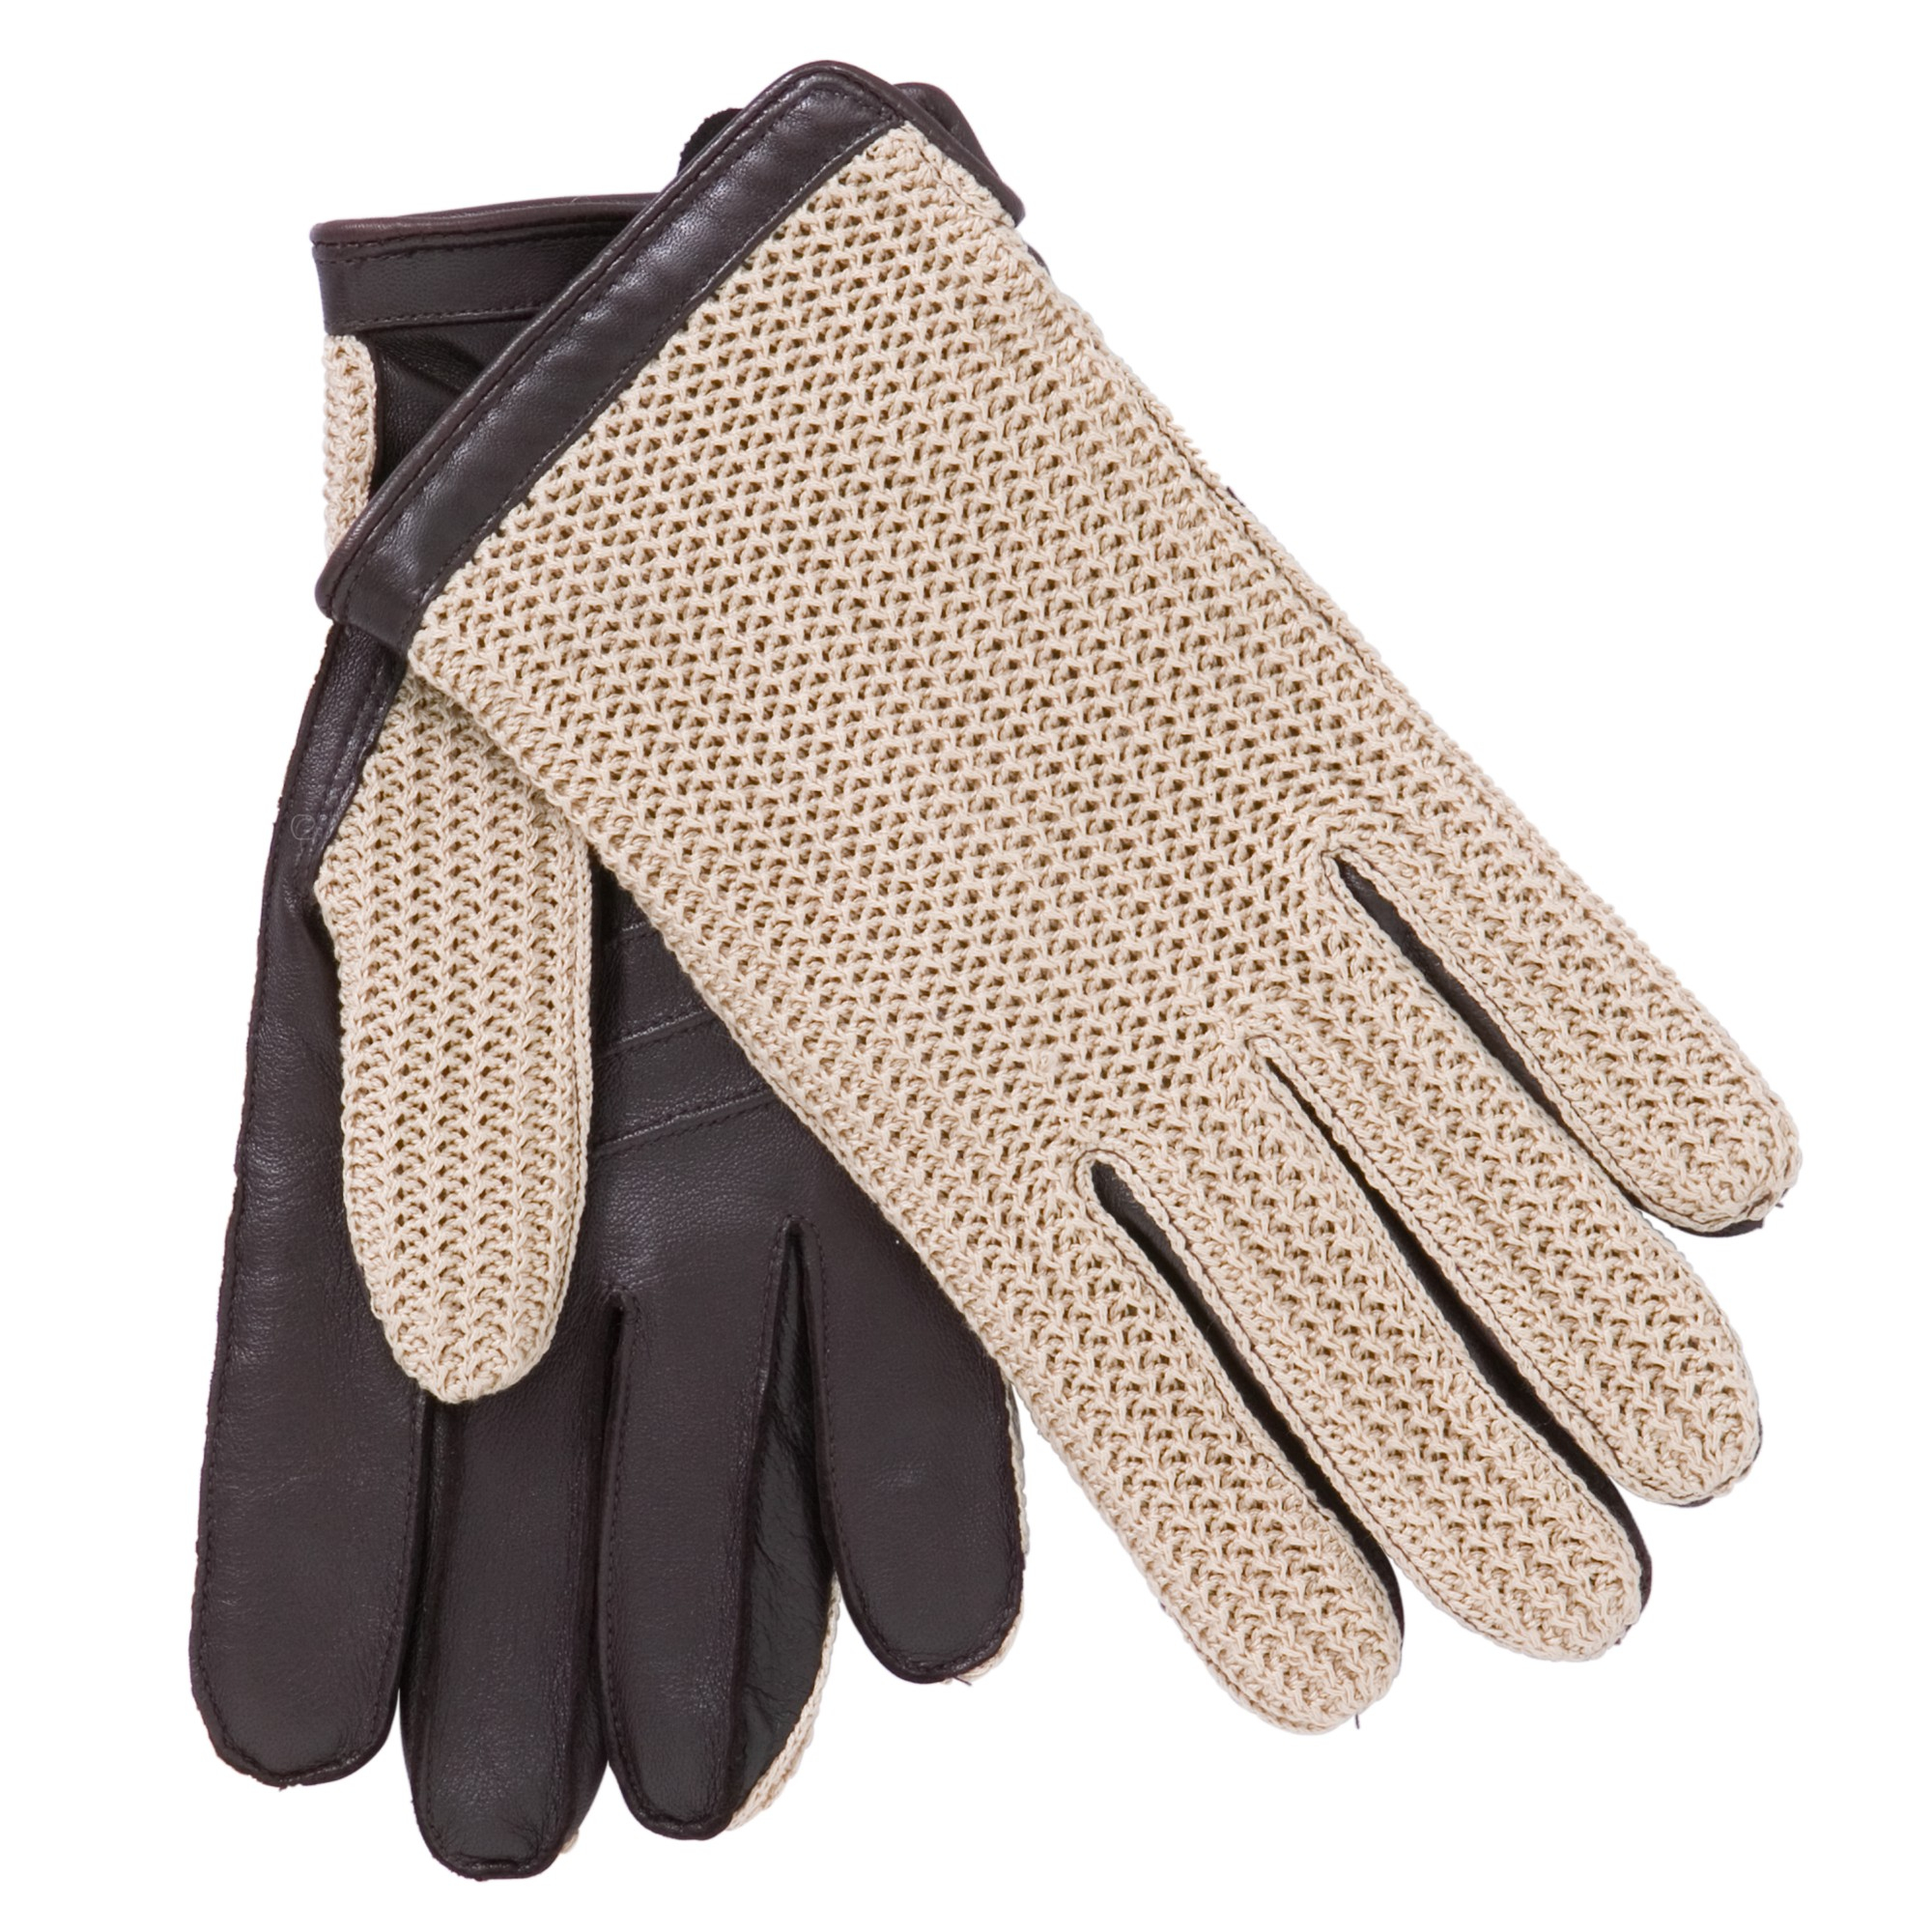 John lewis brown crochet back wool lined leather driving gloves for men lyst